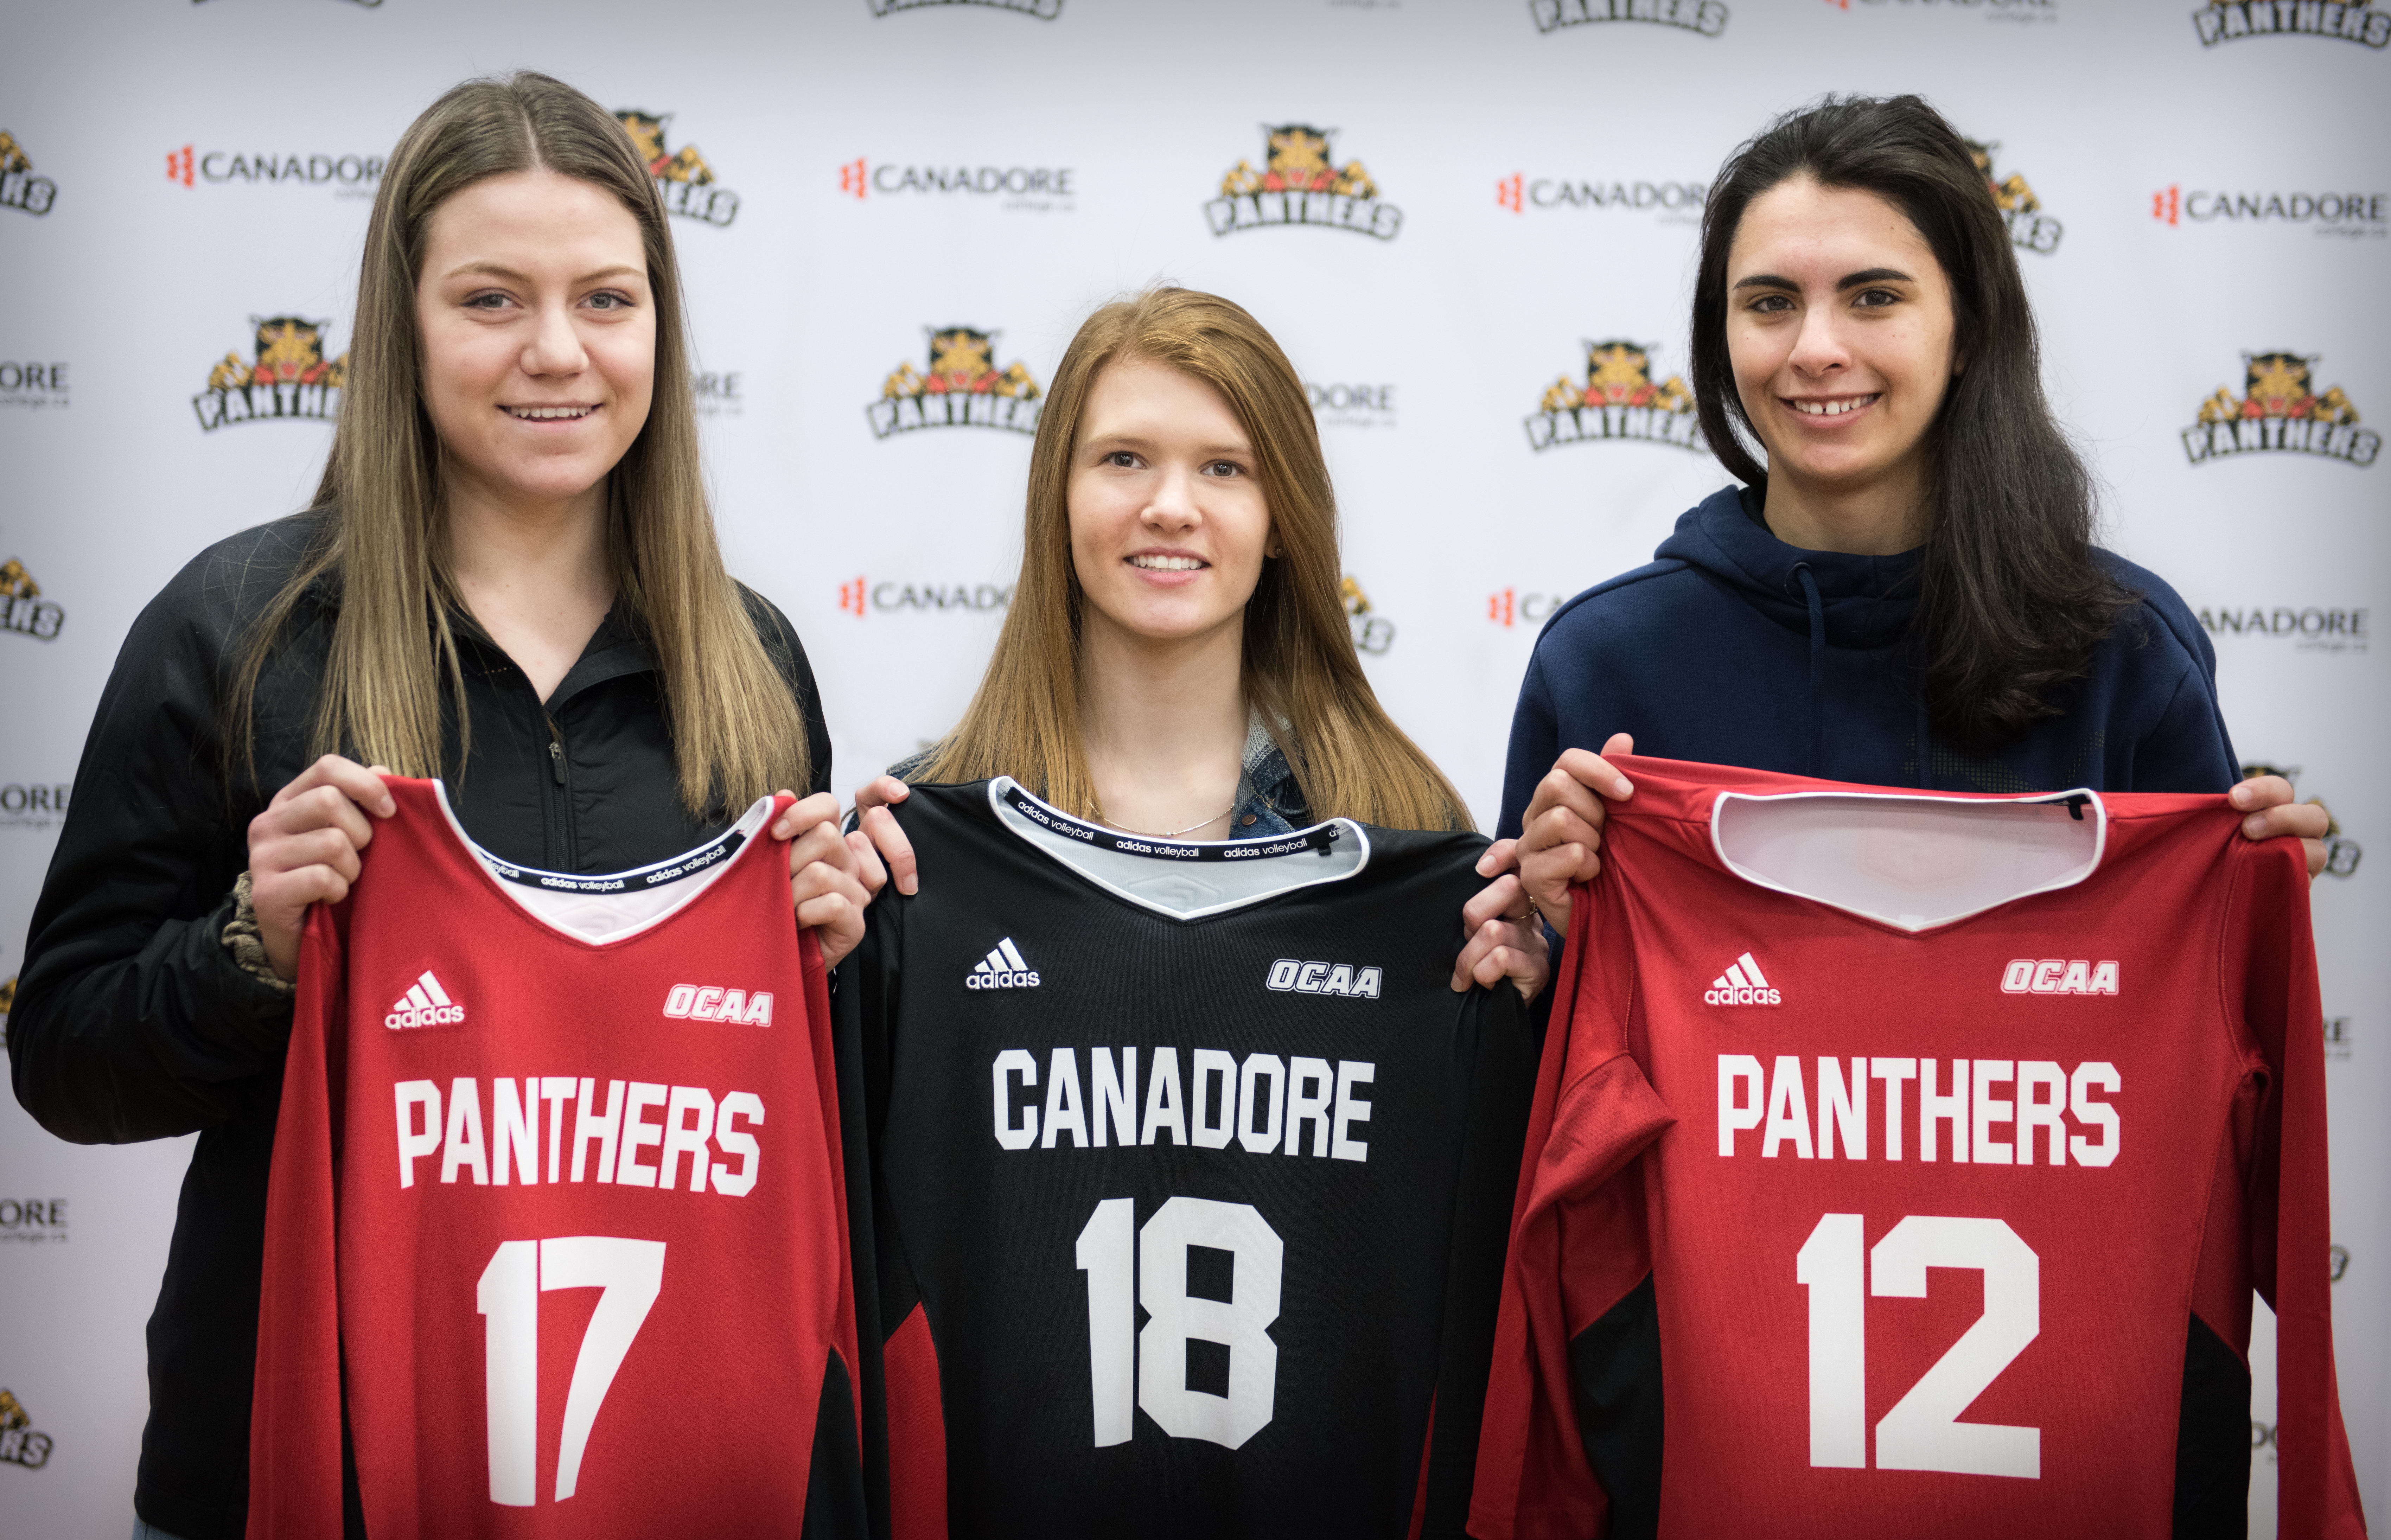 Three girls holding jerseys